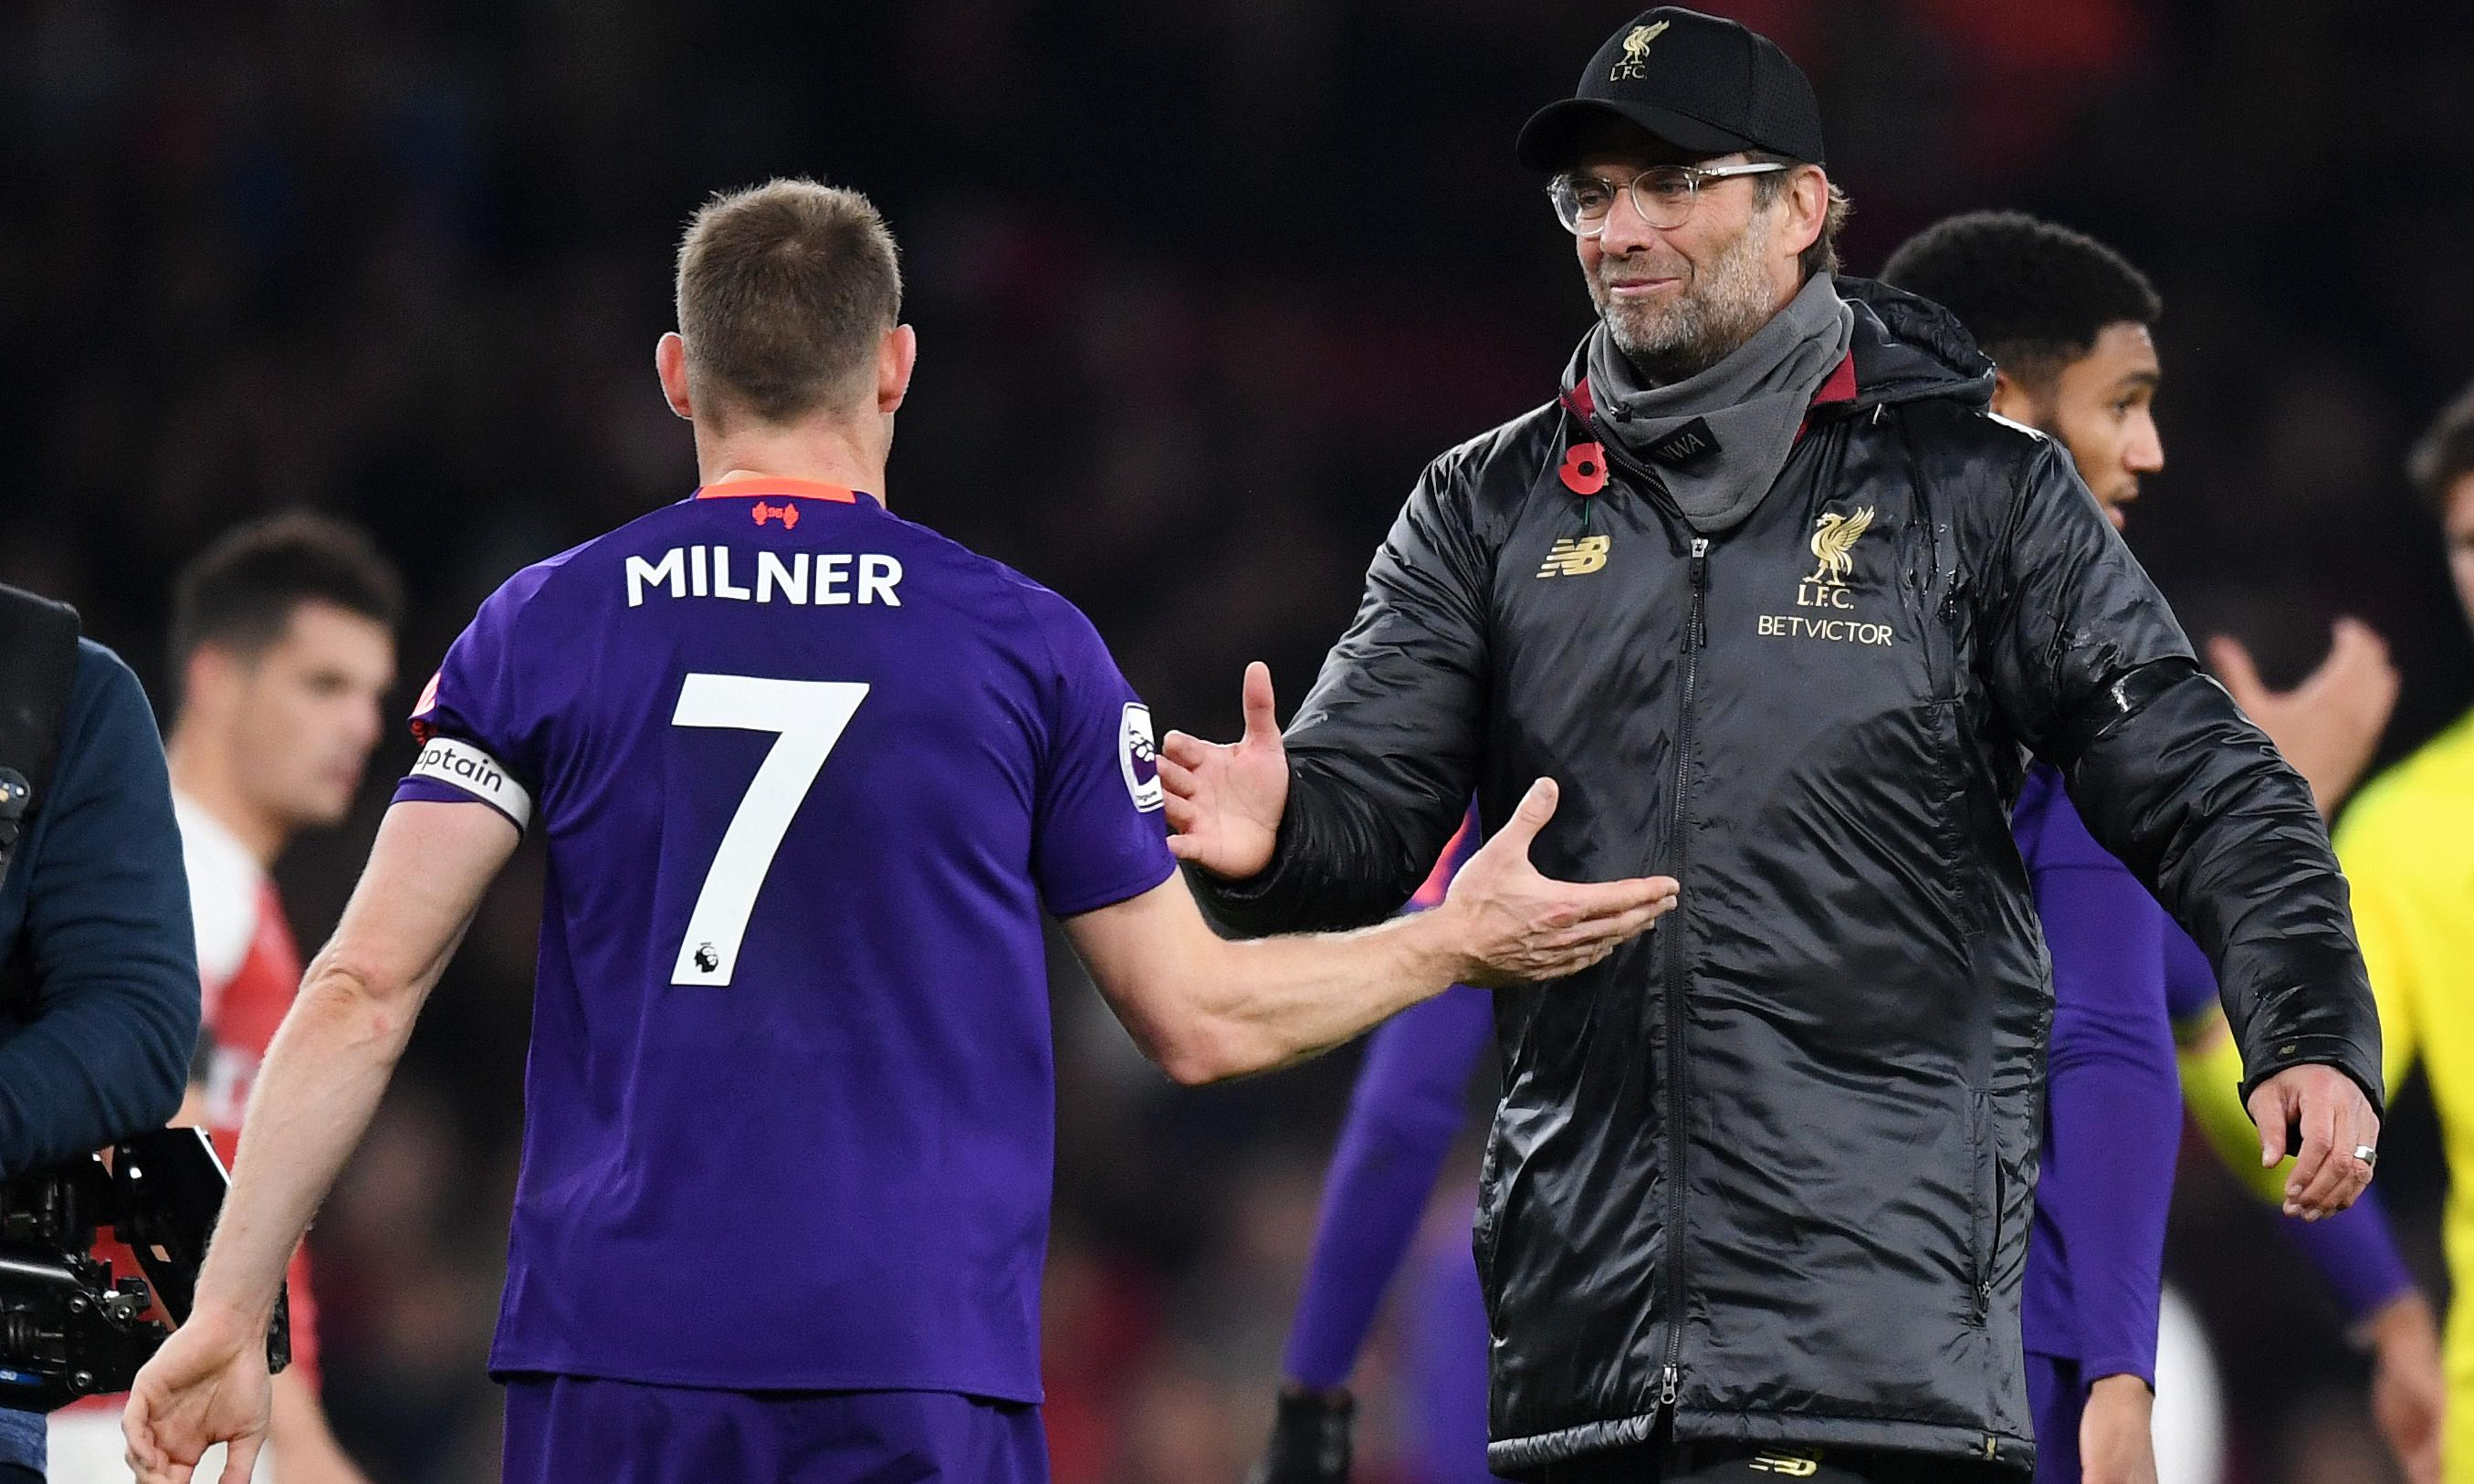 James Milner fired up Liverpool team-mates during Arsenal draw, says Klopp